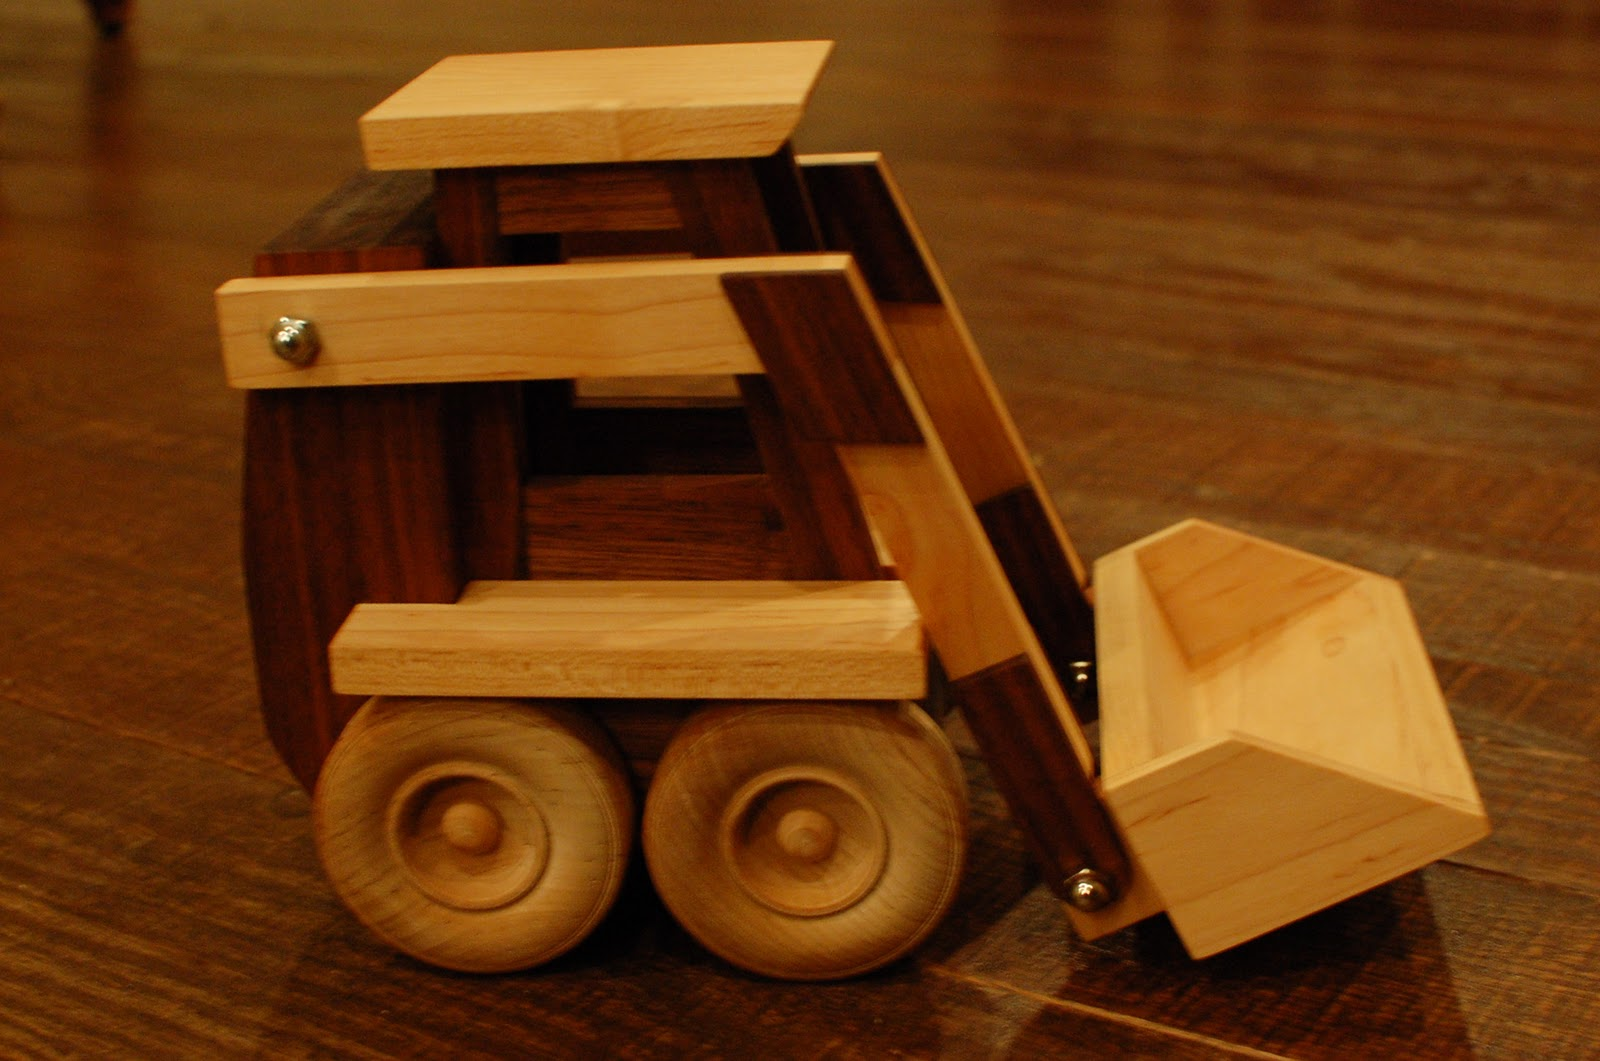 Wooden Toy Trucks For 3 Year Old : Chad s workshop toy wooden skid loader